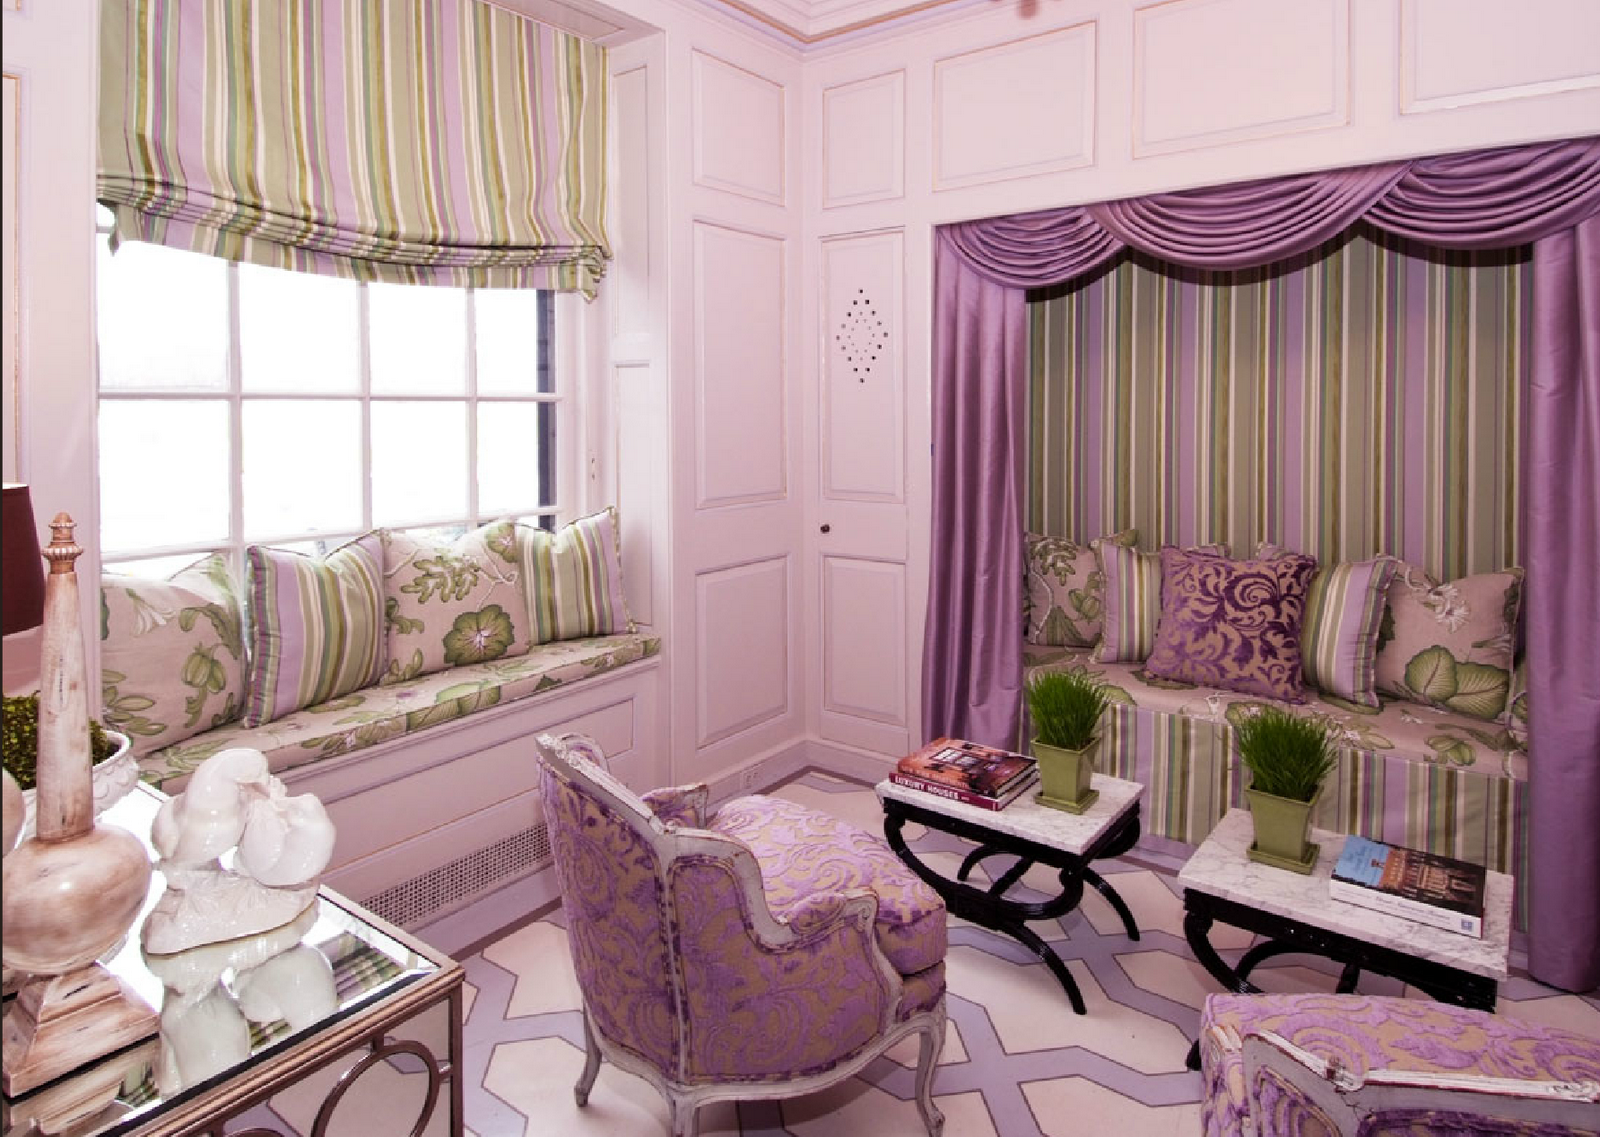 4 teen girls bedroom 7 interior design ideas - Purple room for girls ...